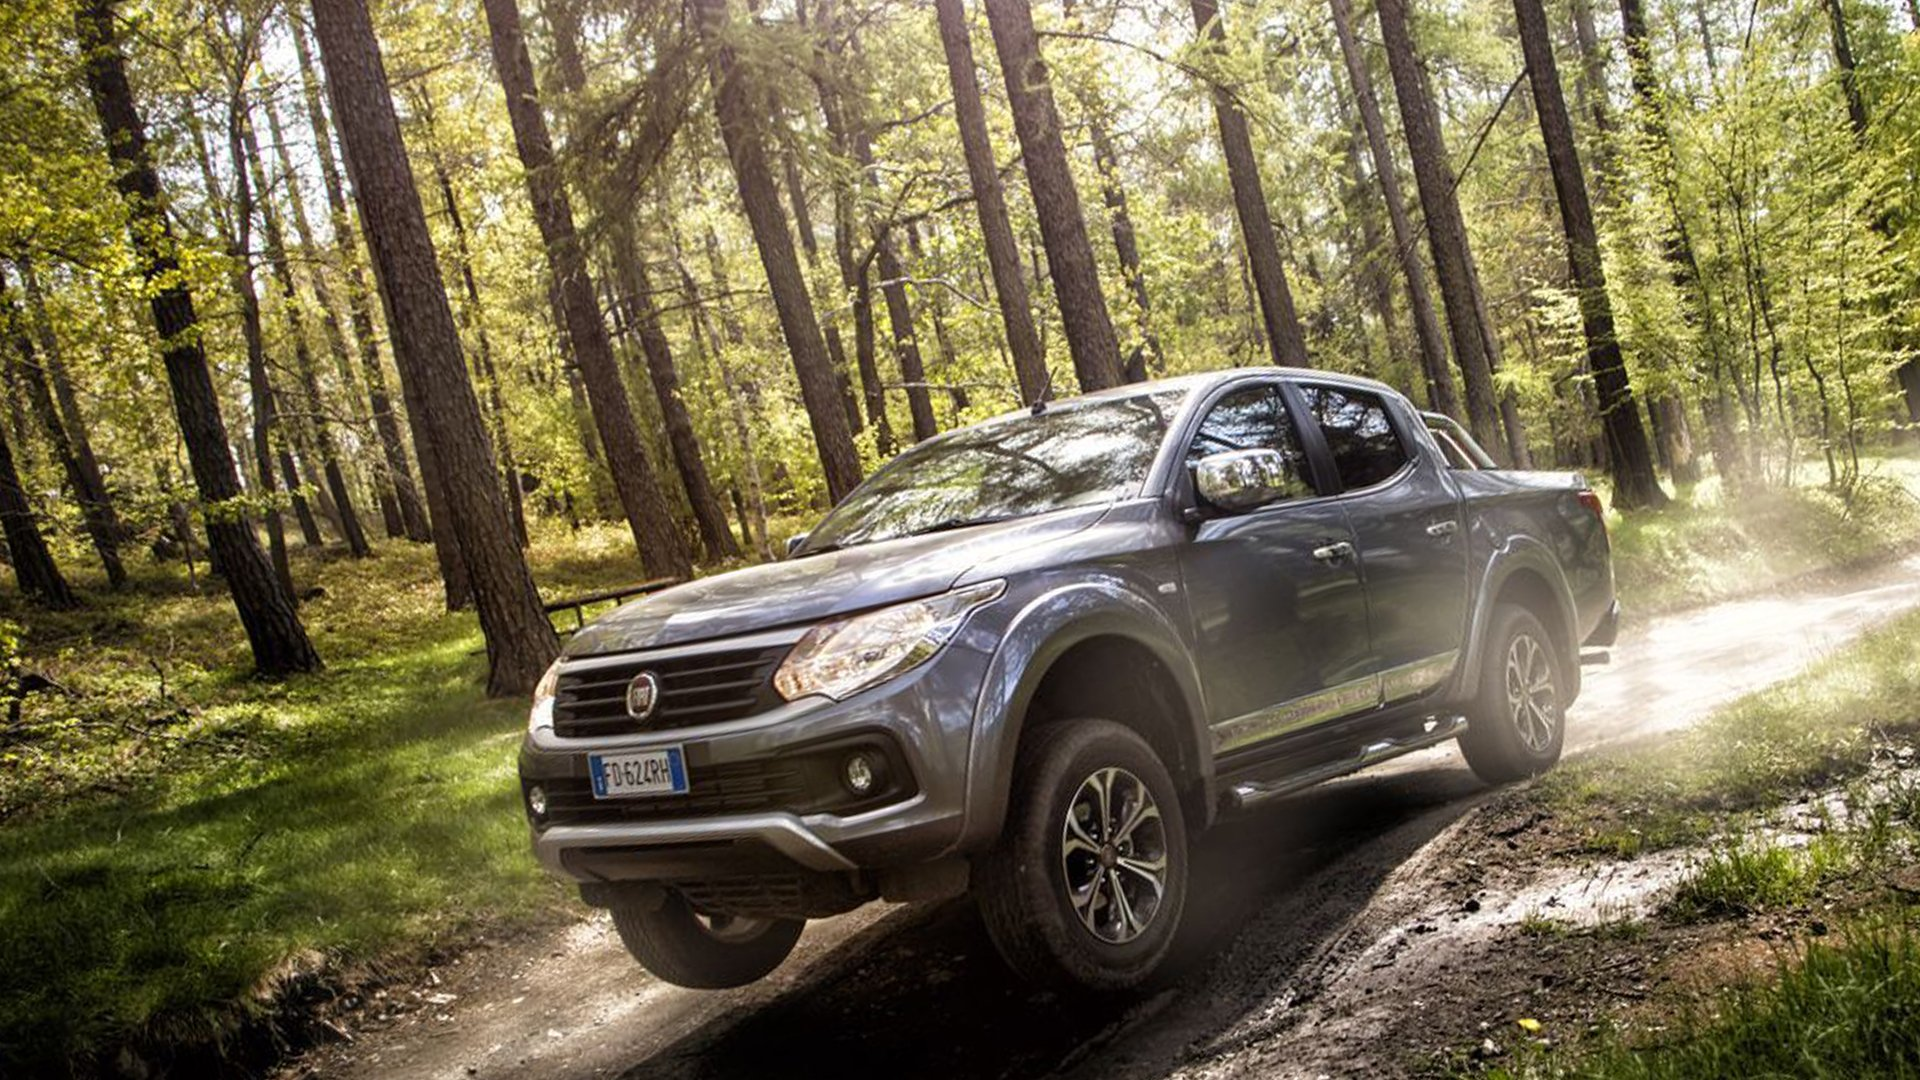 New 2019 Fiat Fullback Wallpaper HD Desktop